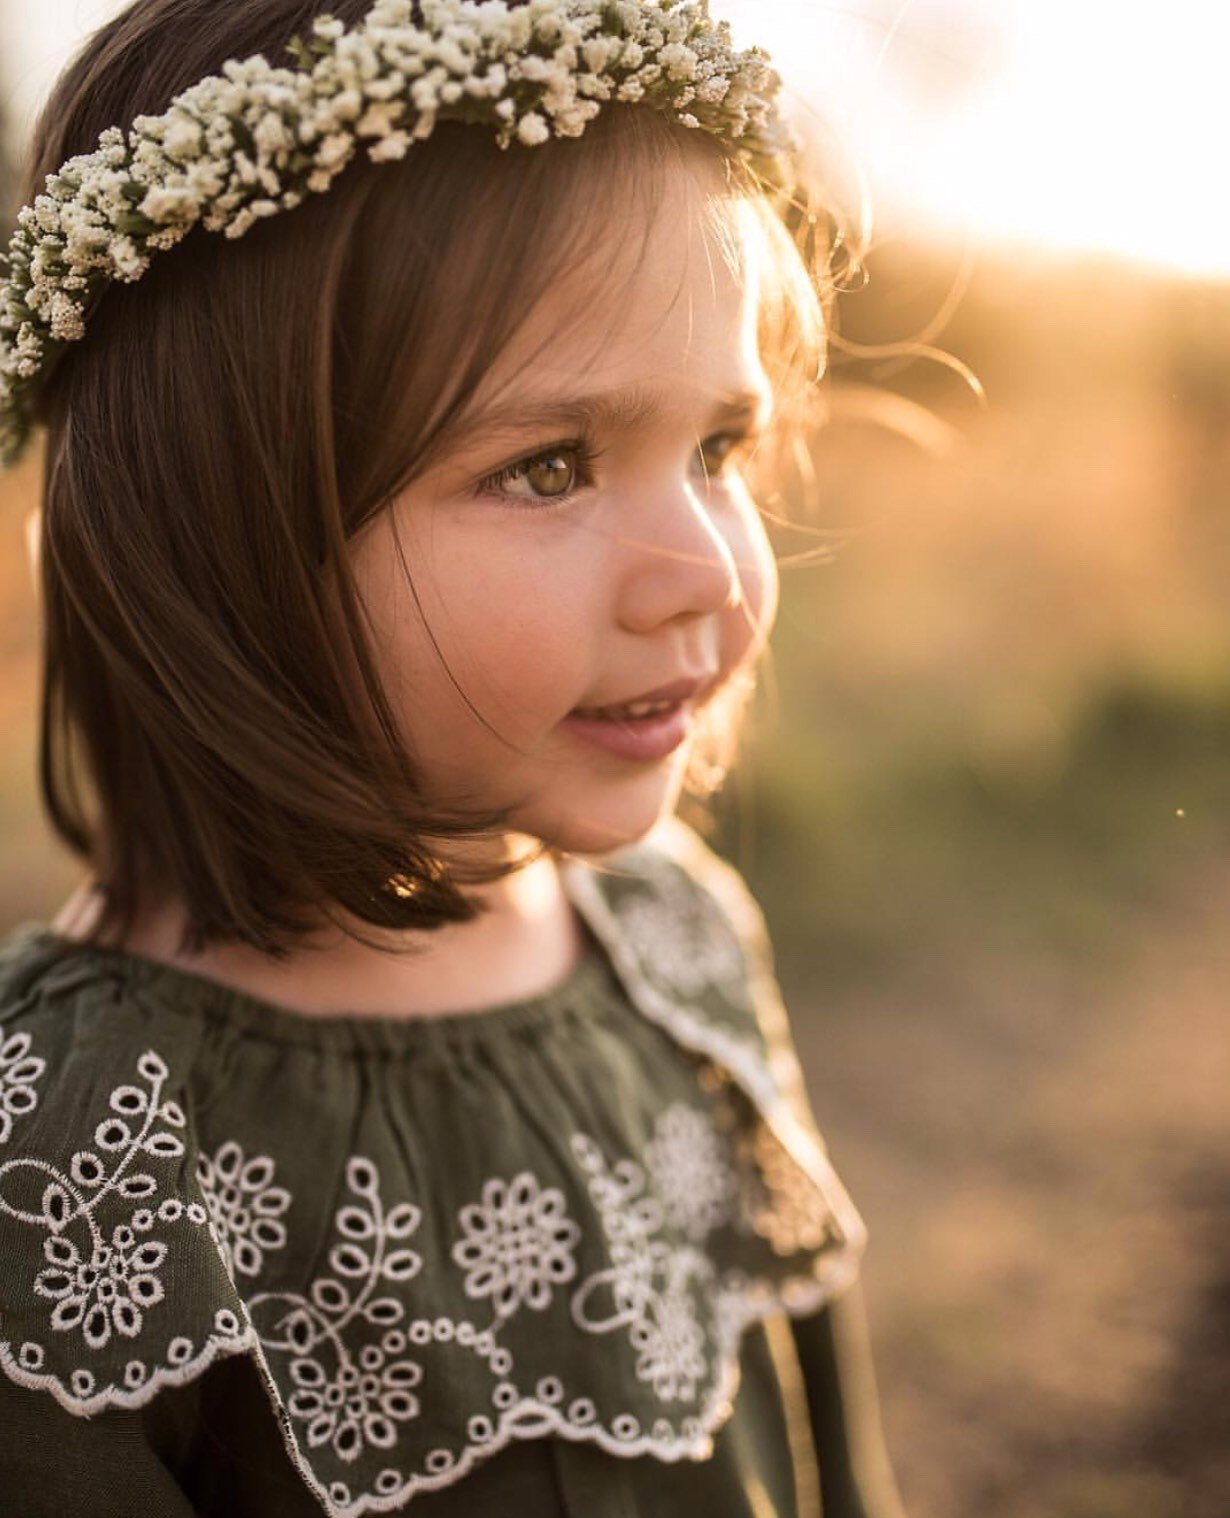 Mason and Harlow Baby's Breath Floral Crown - Price: $42.00- $45.00Size: Baby or ToddlerYou Get: Add this on to any other donation to get 3 bonus images$75 value